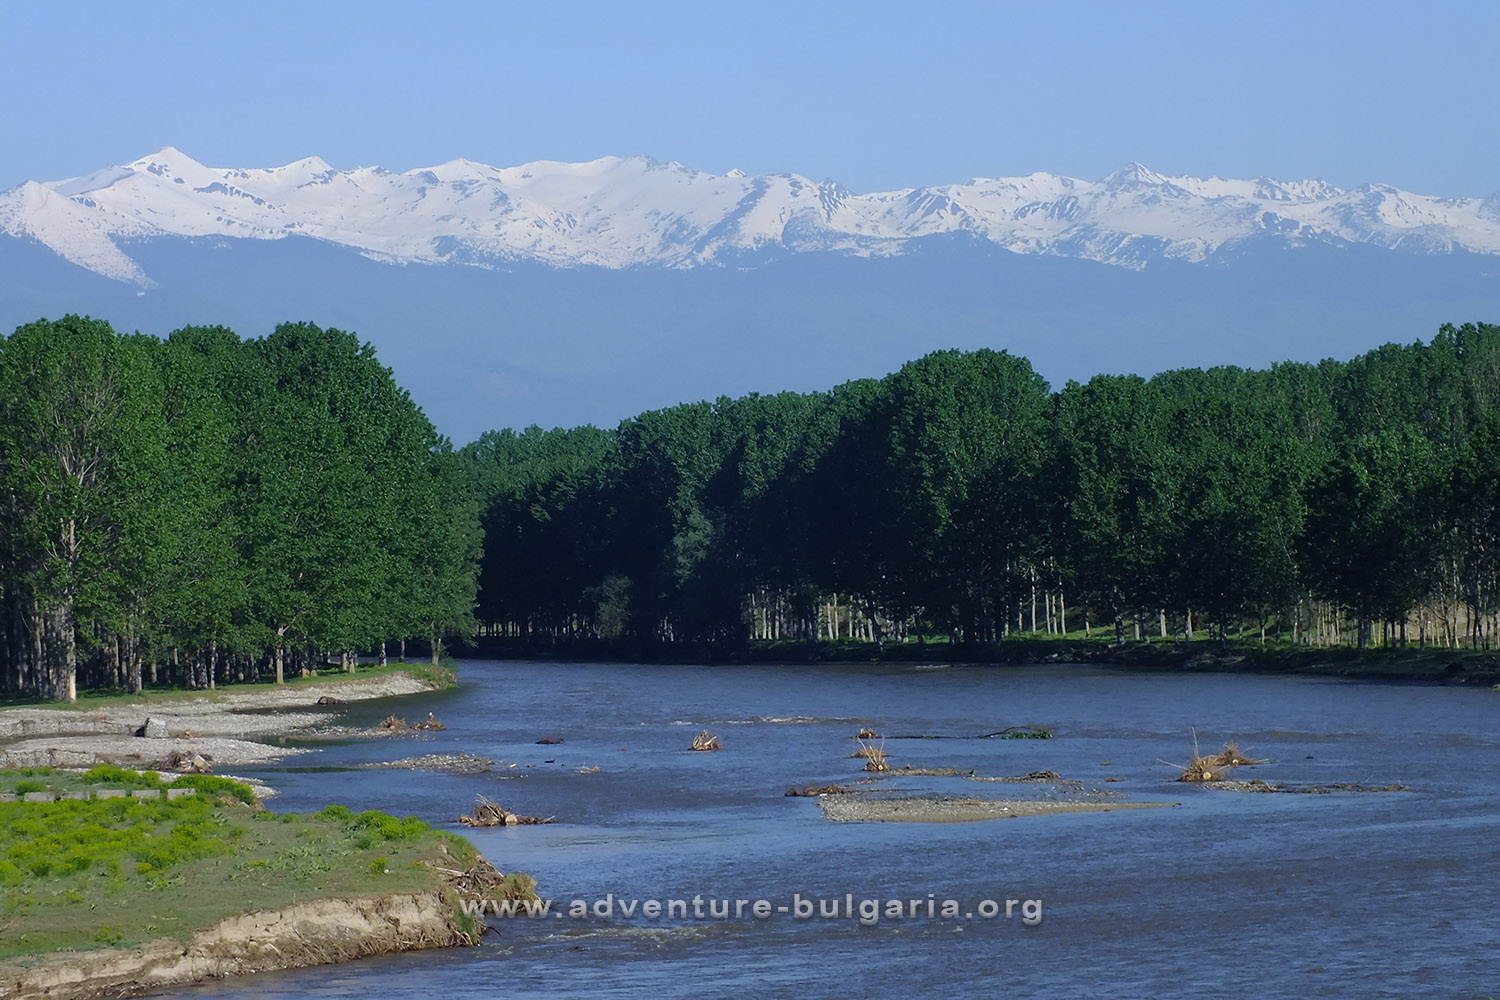 The Mesta River and the snow peaks of the Pirin Mountains, Bulgaria